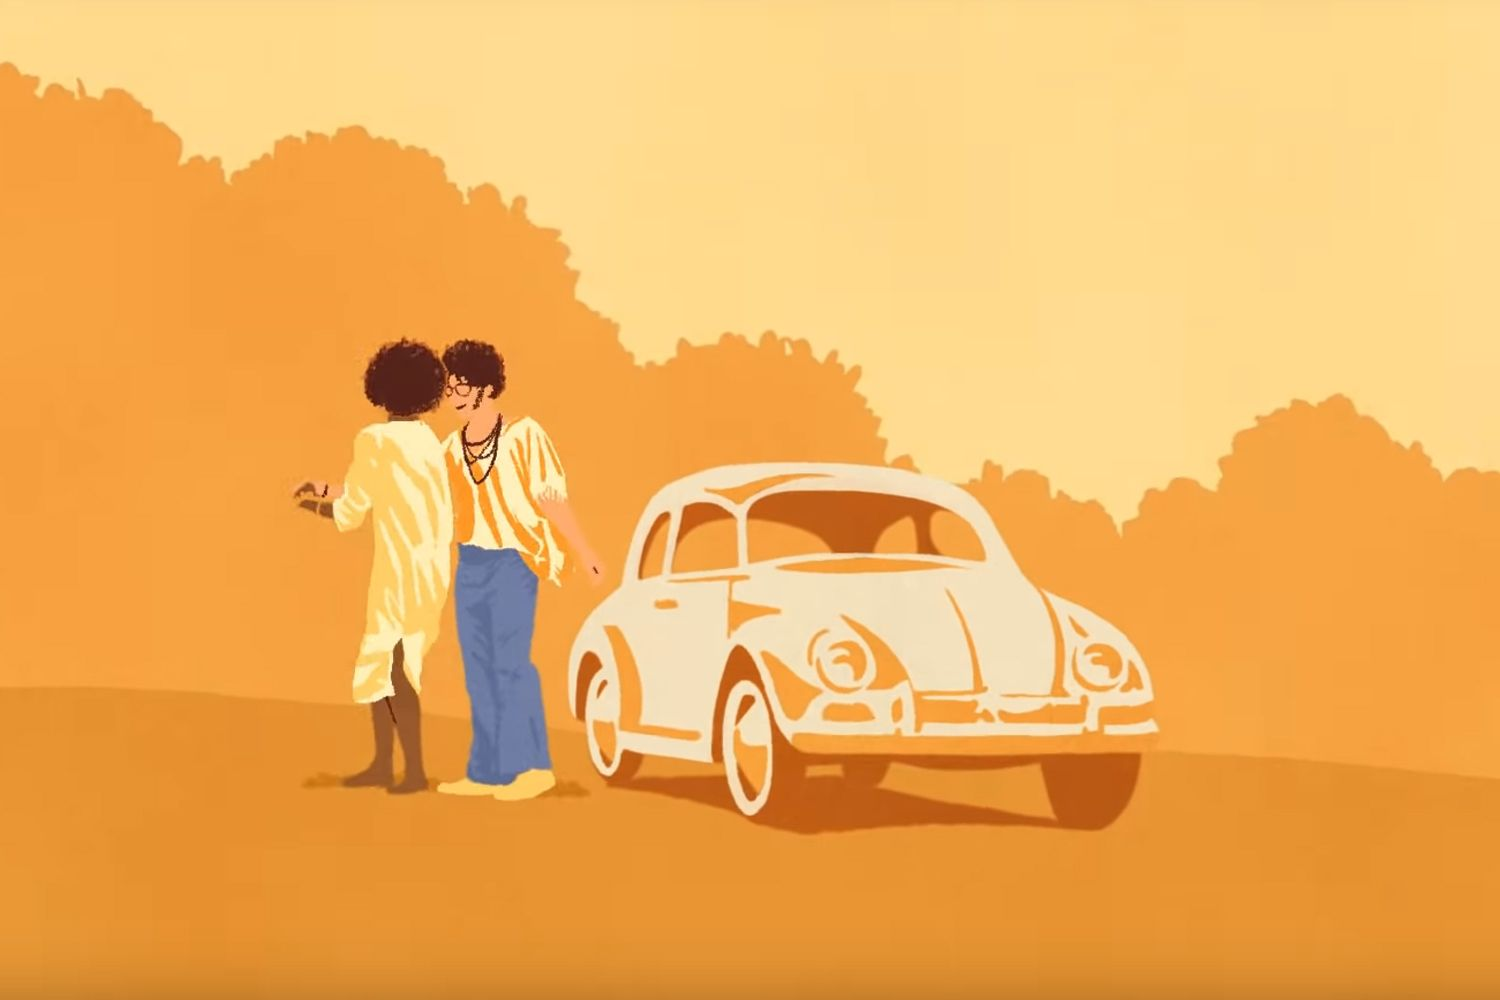 Watch: Volkswagen Says Goodbye To Its Iconic Beetle With An Emotional Video